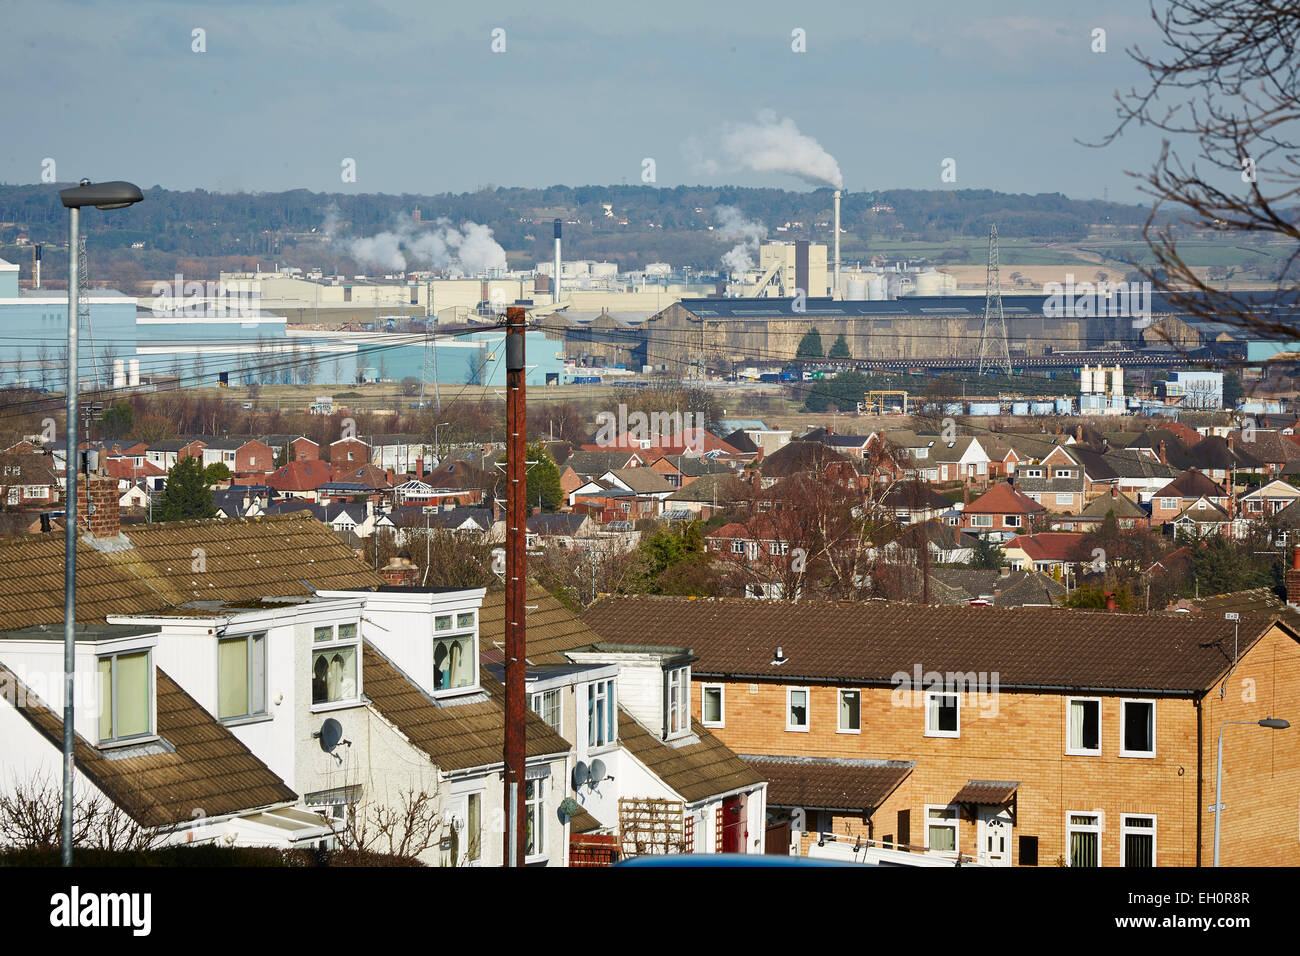 Deeside is the name given to a predominantly industrial conurbation of towns and villages in Flintshire close to - Stock Image